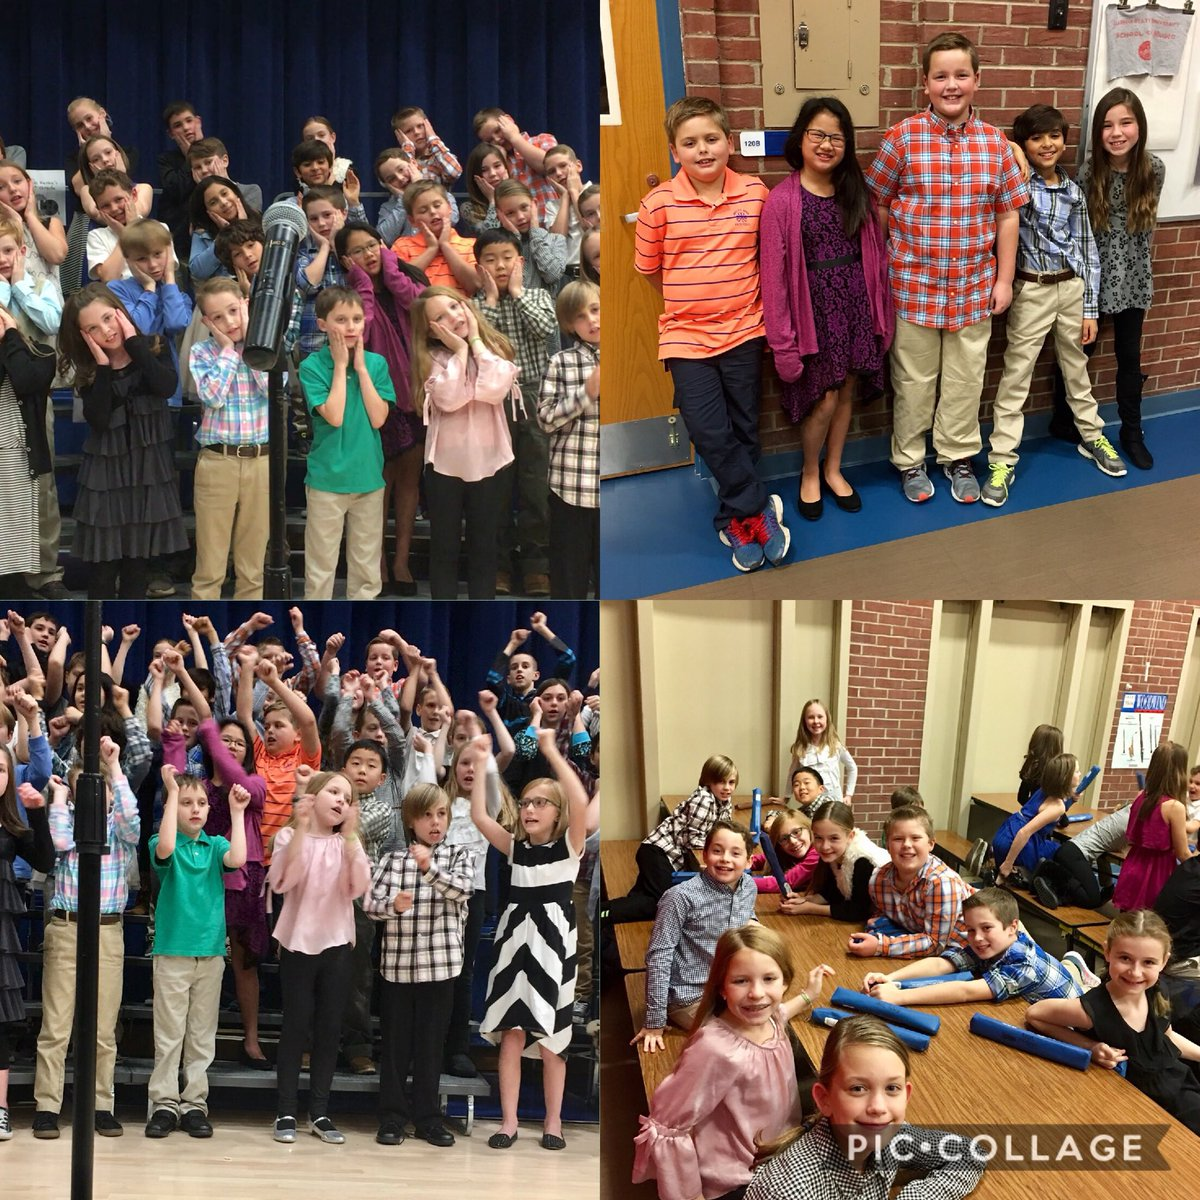 Still singing along from Fall Sing  Way to go 4th/5th graders &amp; @MrsGriffinMusic! #D70ShinyApple #D70Cougars #sing #musiced #ifeelbetterwhenimdancin<br>http://pic.twitter.com/aXLP6nZ7bH